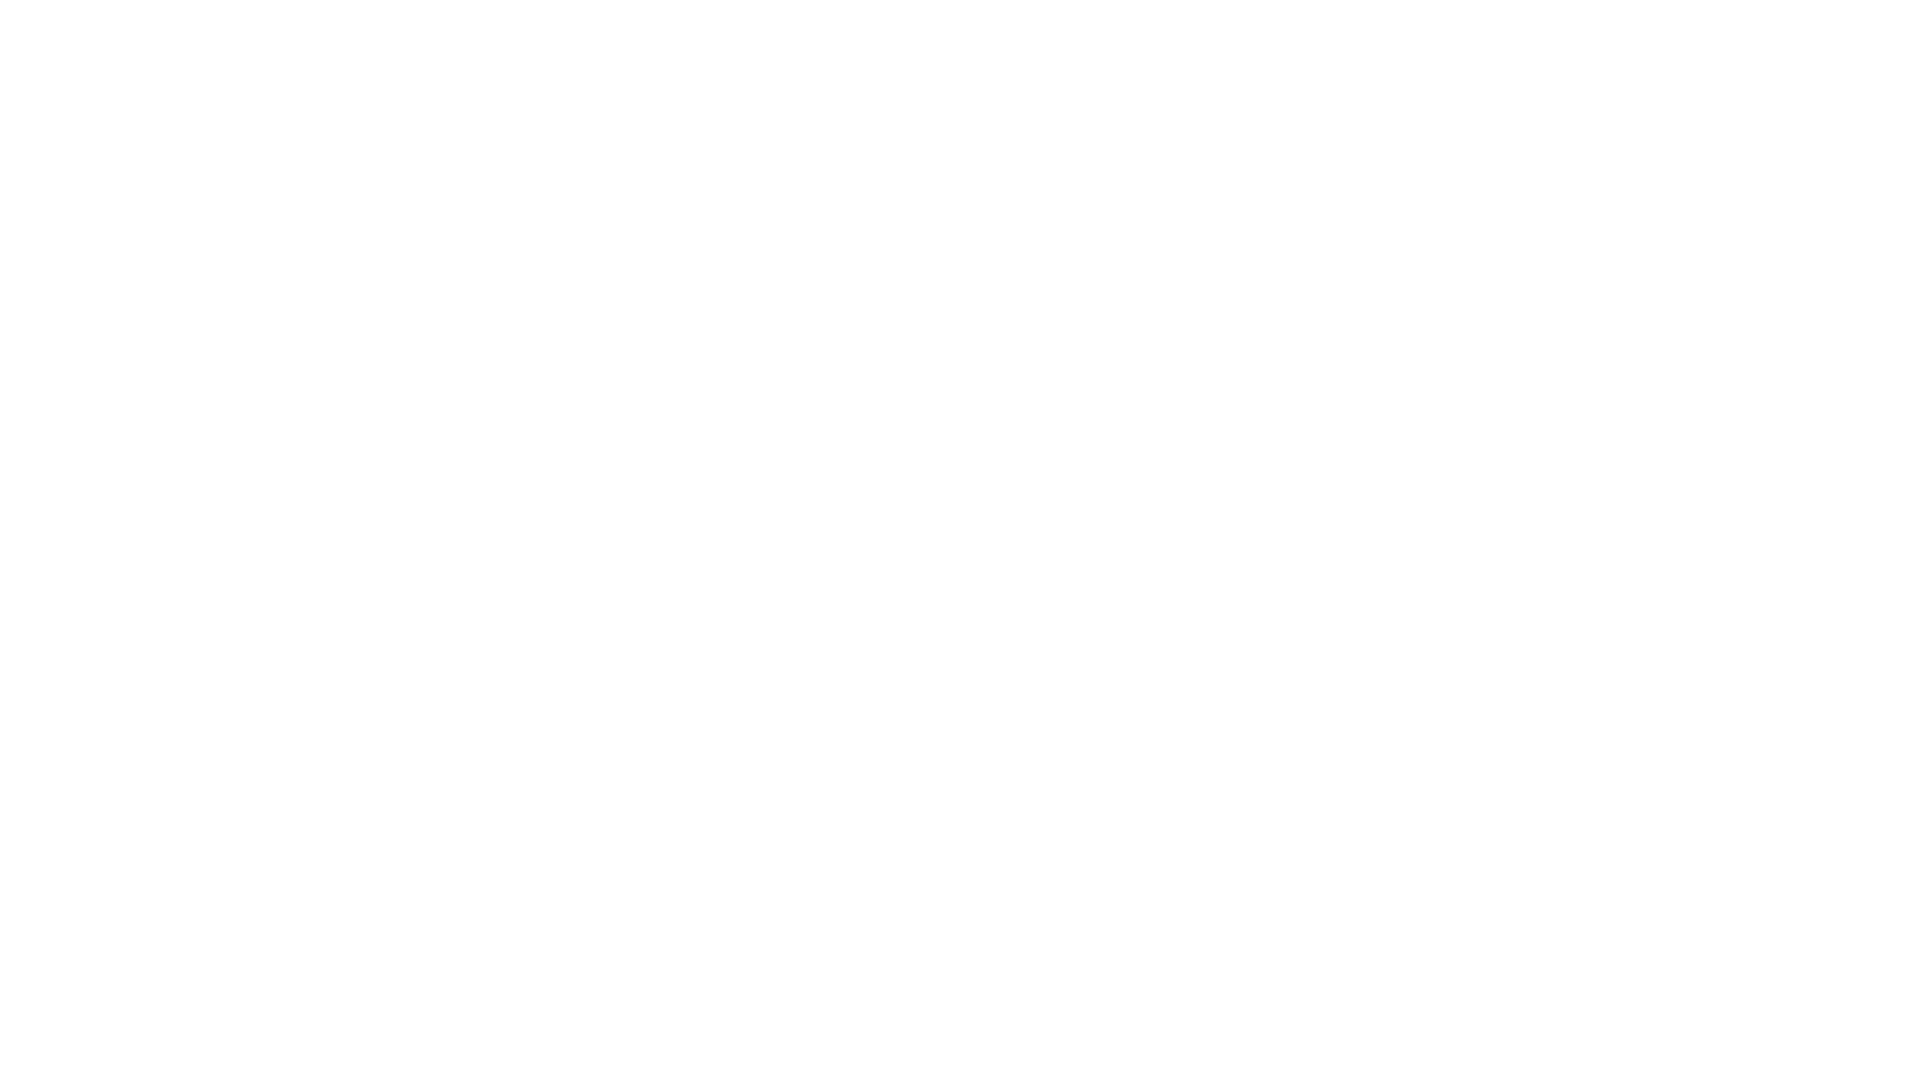 Global Telco Blockchain Summit 2020